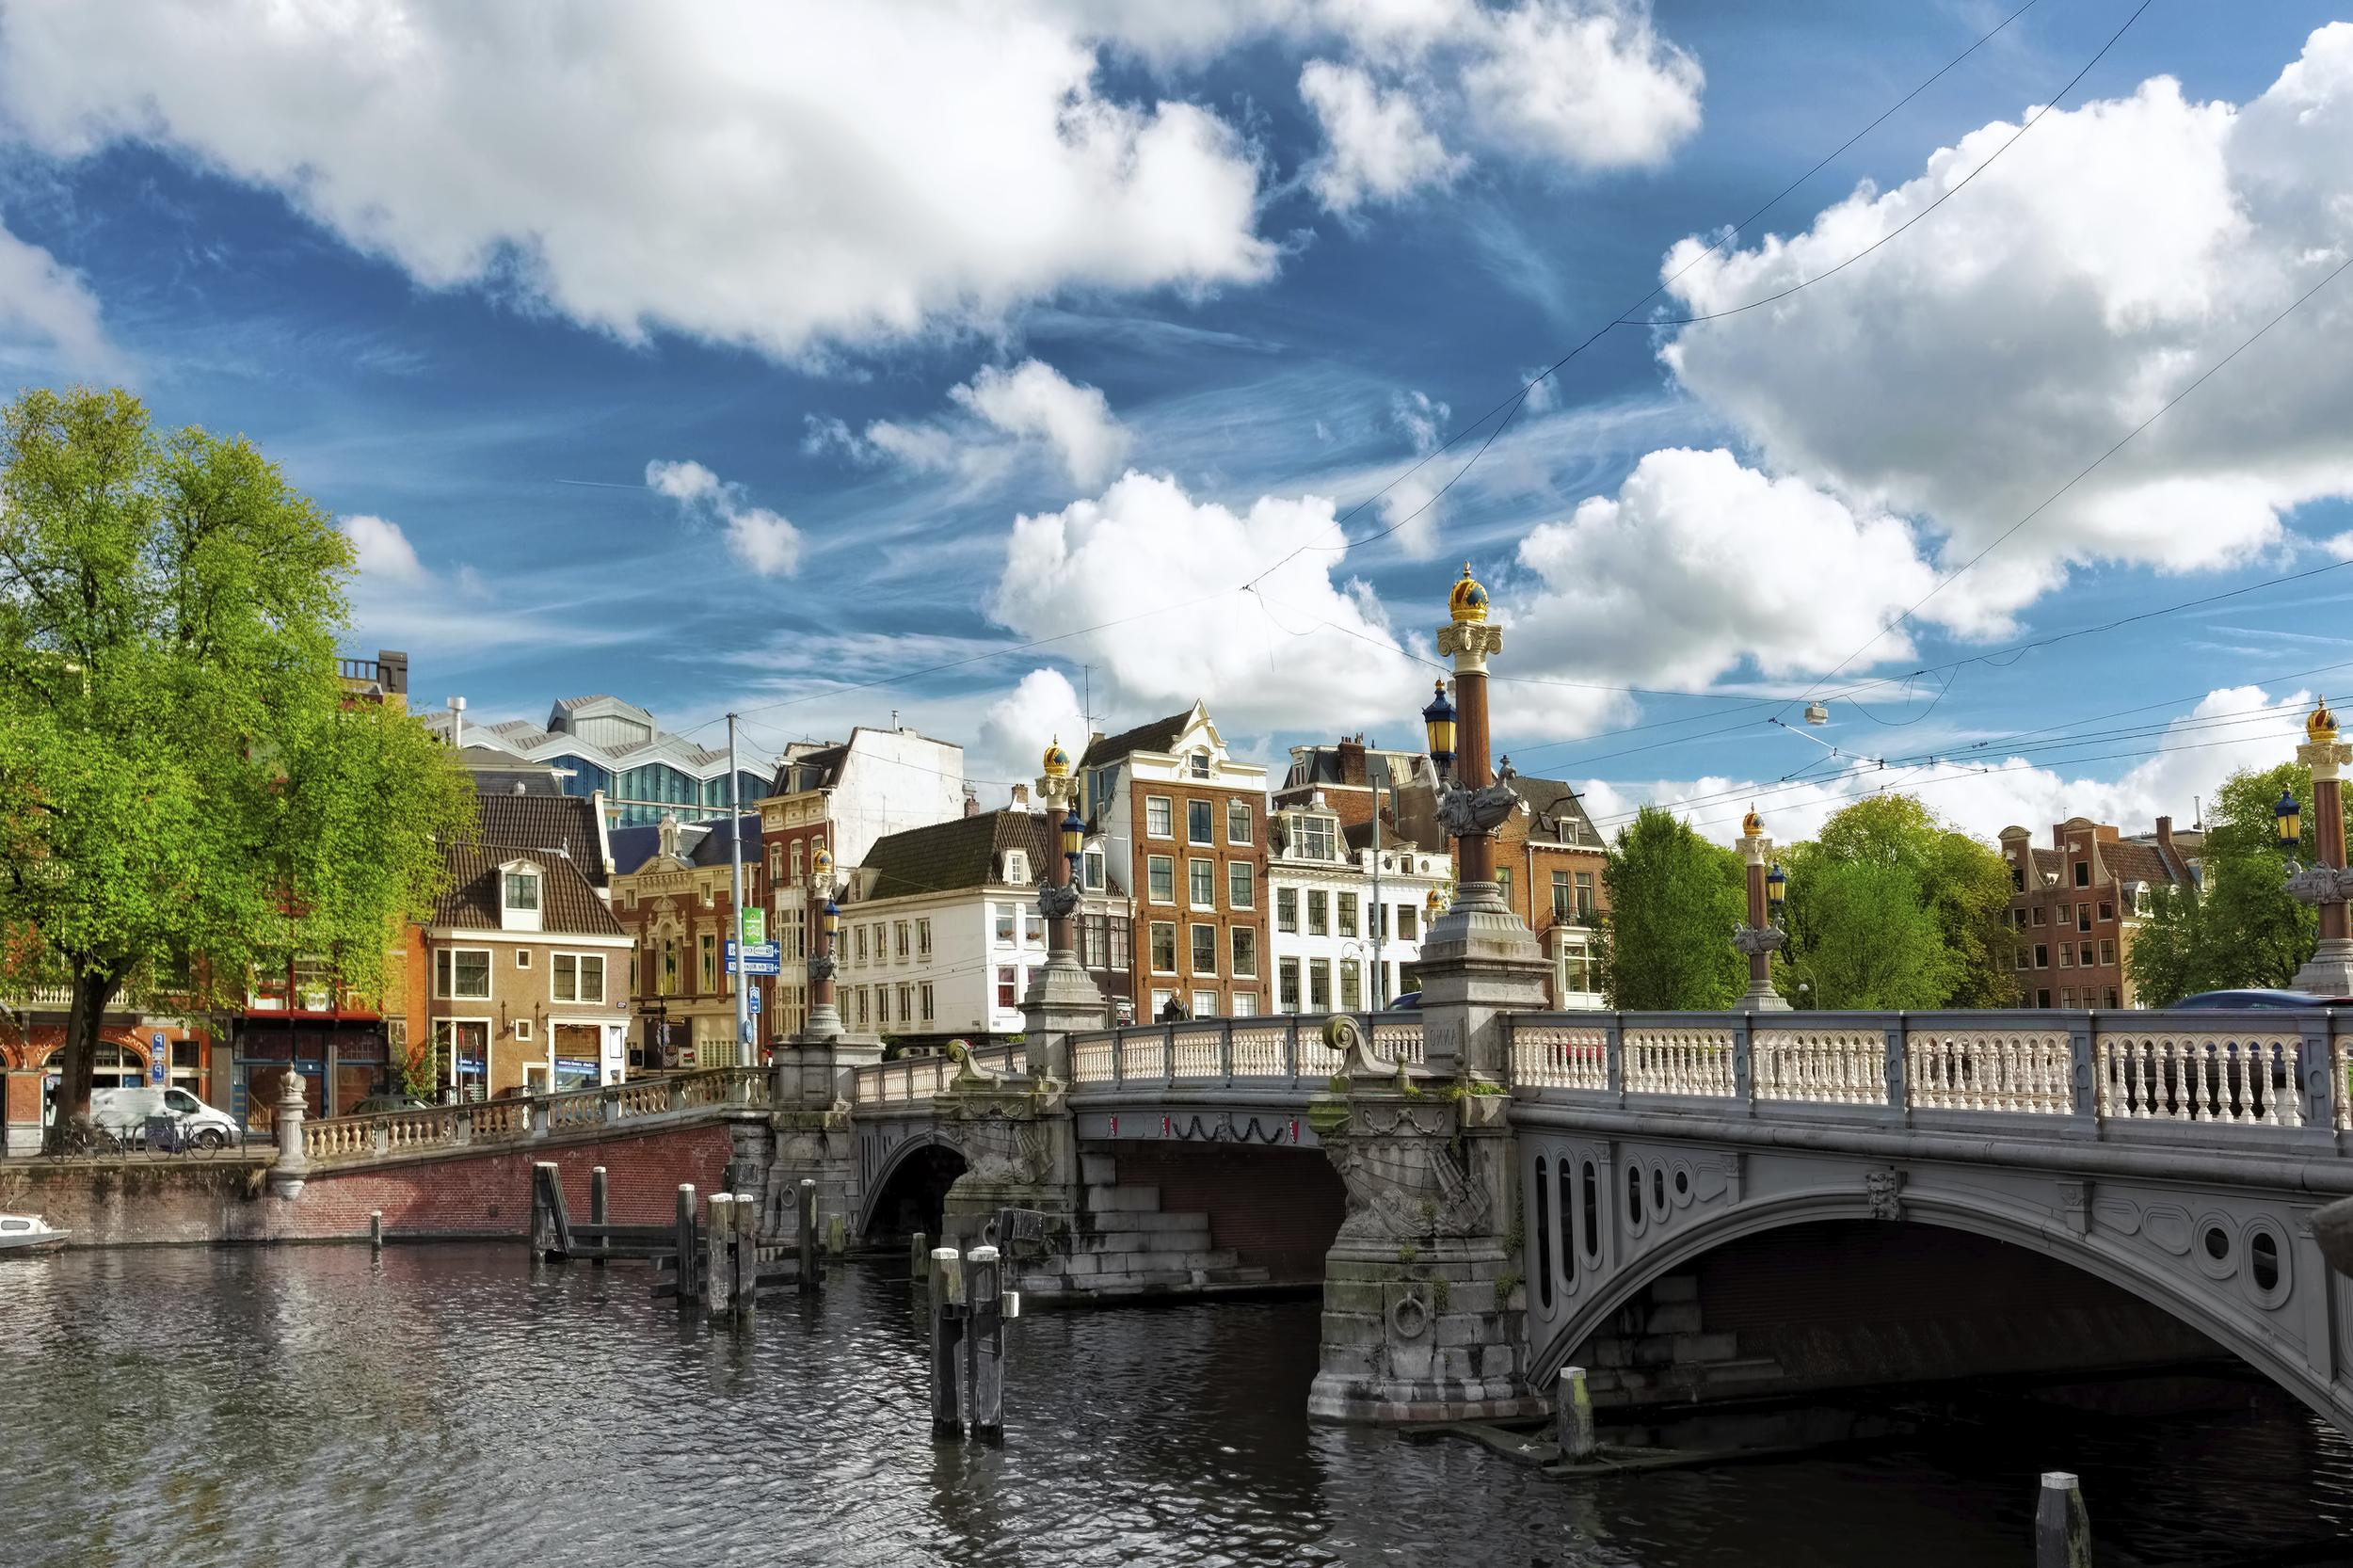 <p>The Netherlands has a flat-rate public pension and quasi-mandatory earnings-related occupational schemes - which are industry-wide defined benefit schemes based on lifetime average earnings.</p>  <p>The system scored 79.2 out of 100. All its scores were high - particularly for the integrity of the system.</p>